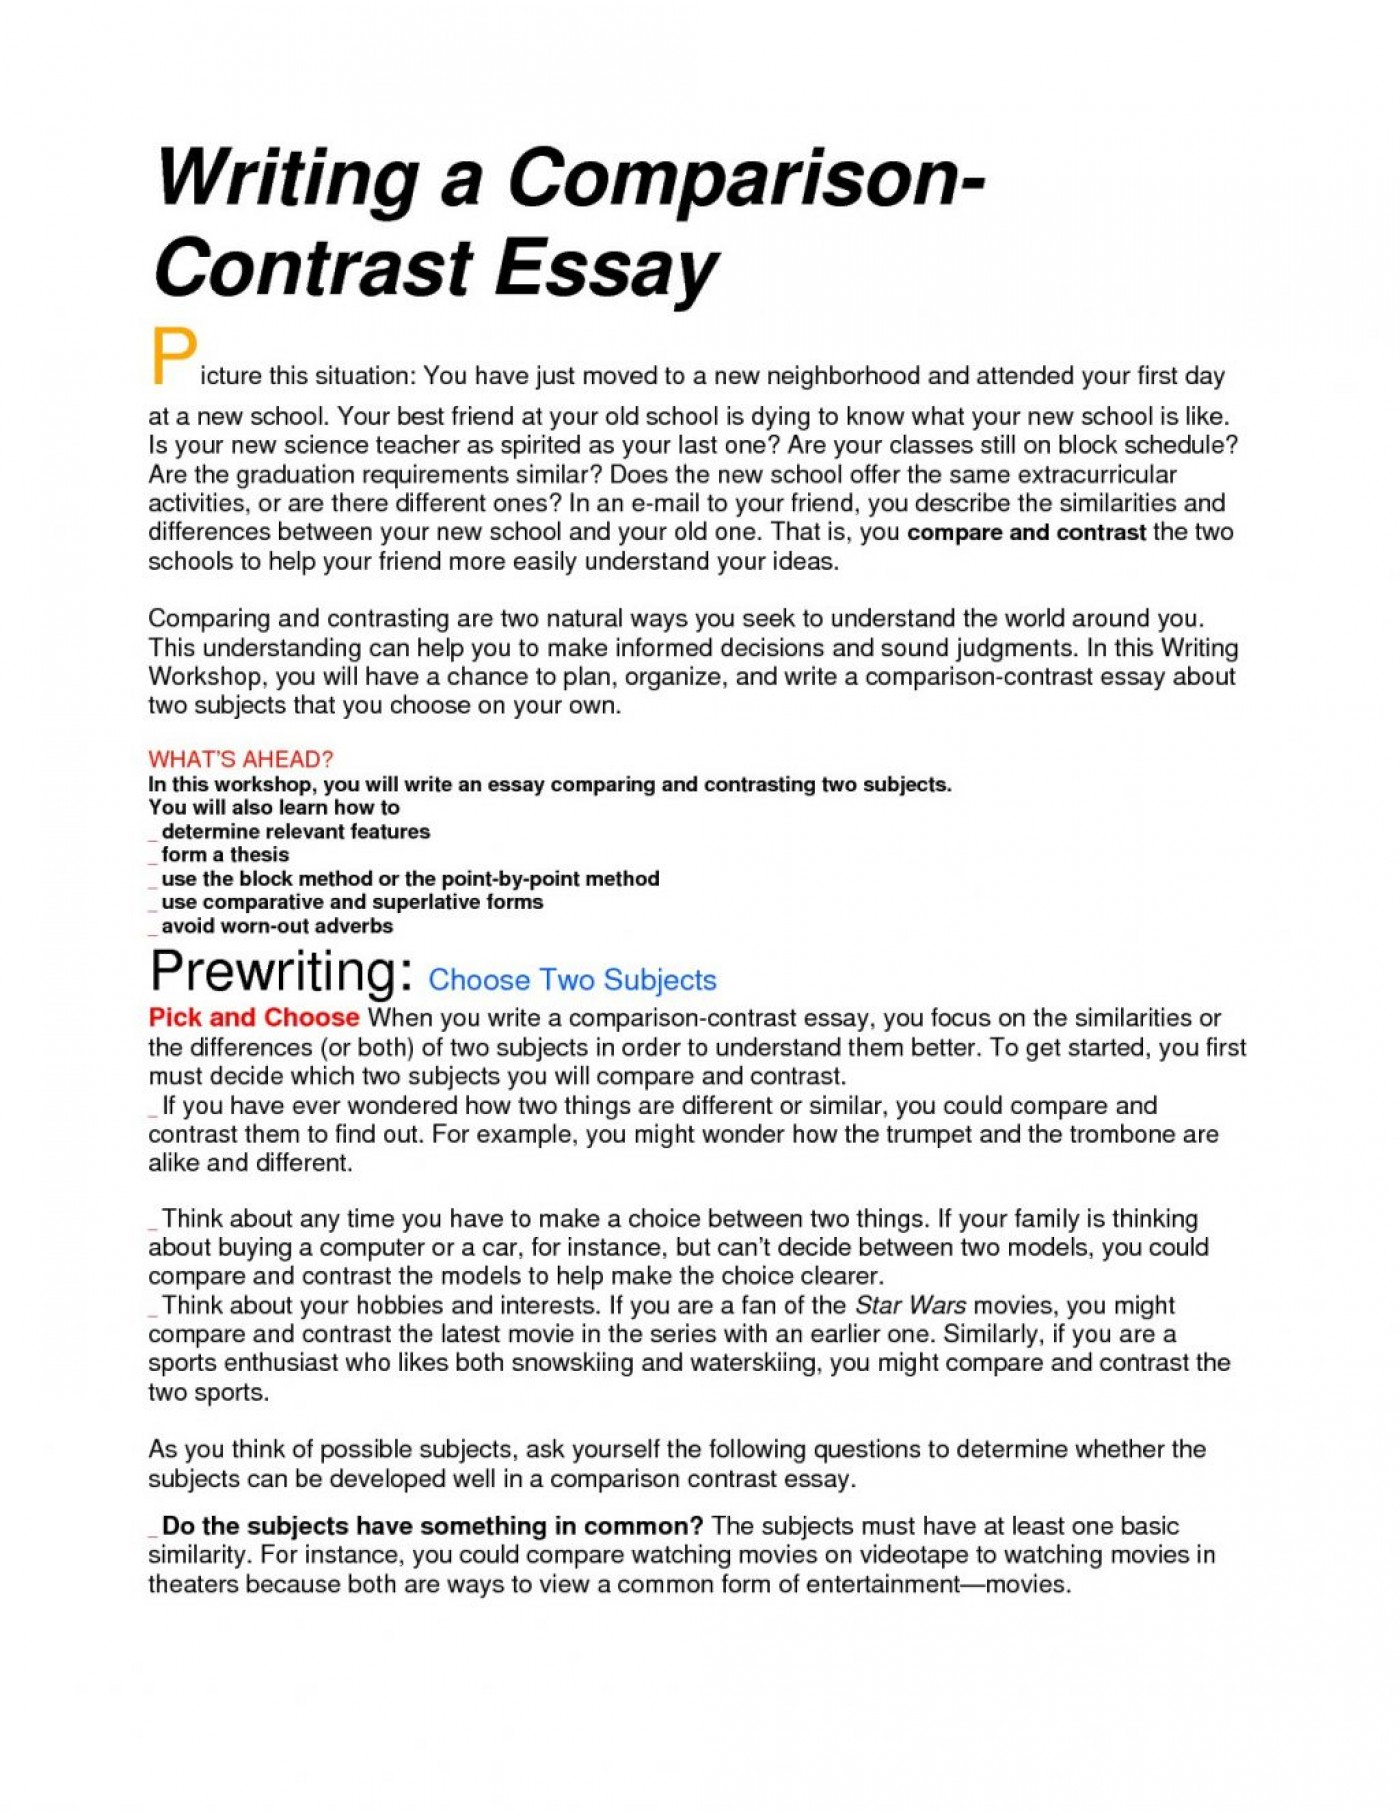 009 Sythesis Of Nanopolymeric Cheap Thesis Statement Proofreading Compare And Contrasty Topics For High Schoolents Photo Comparisonys Esl How To Teach The 1024x1325 Unforgettable Comparison Contrast Essay School Prompts Middle 1400